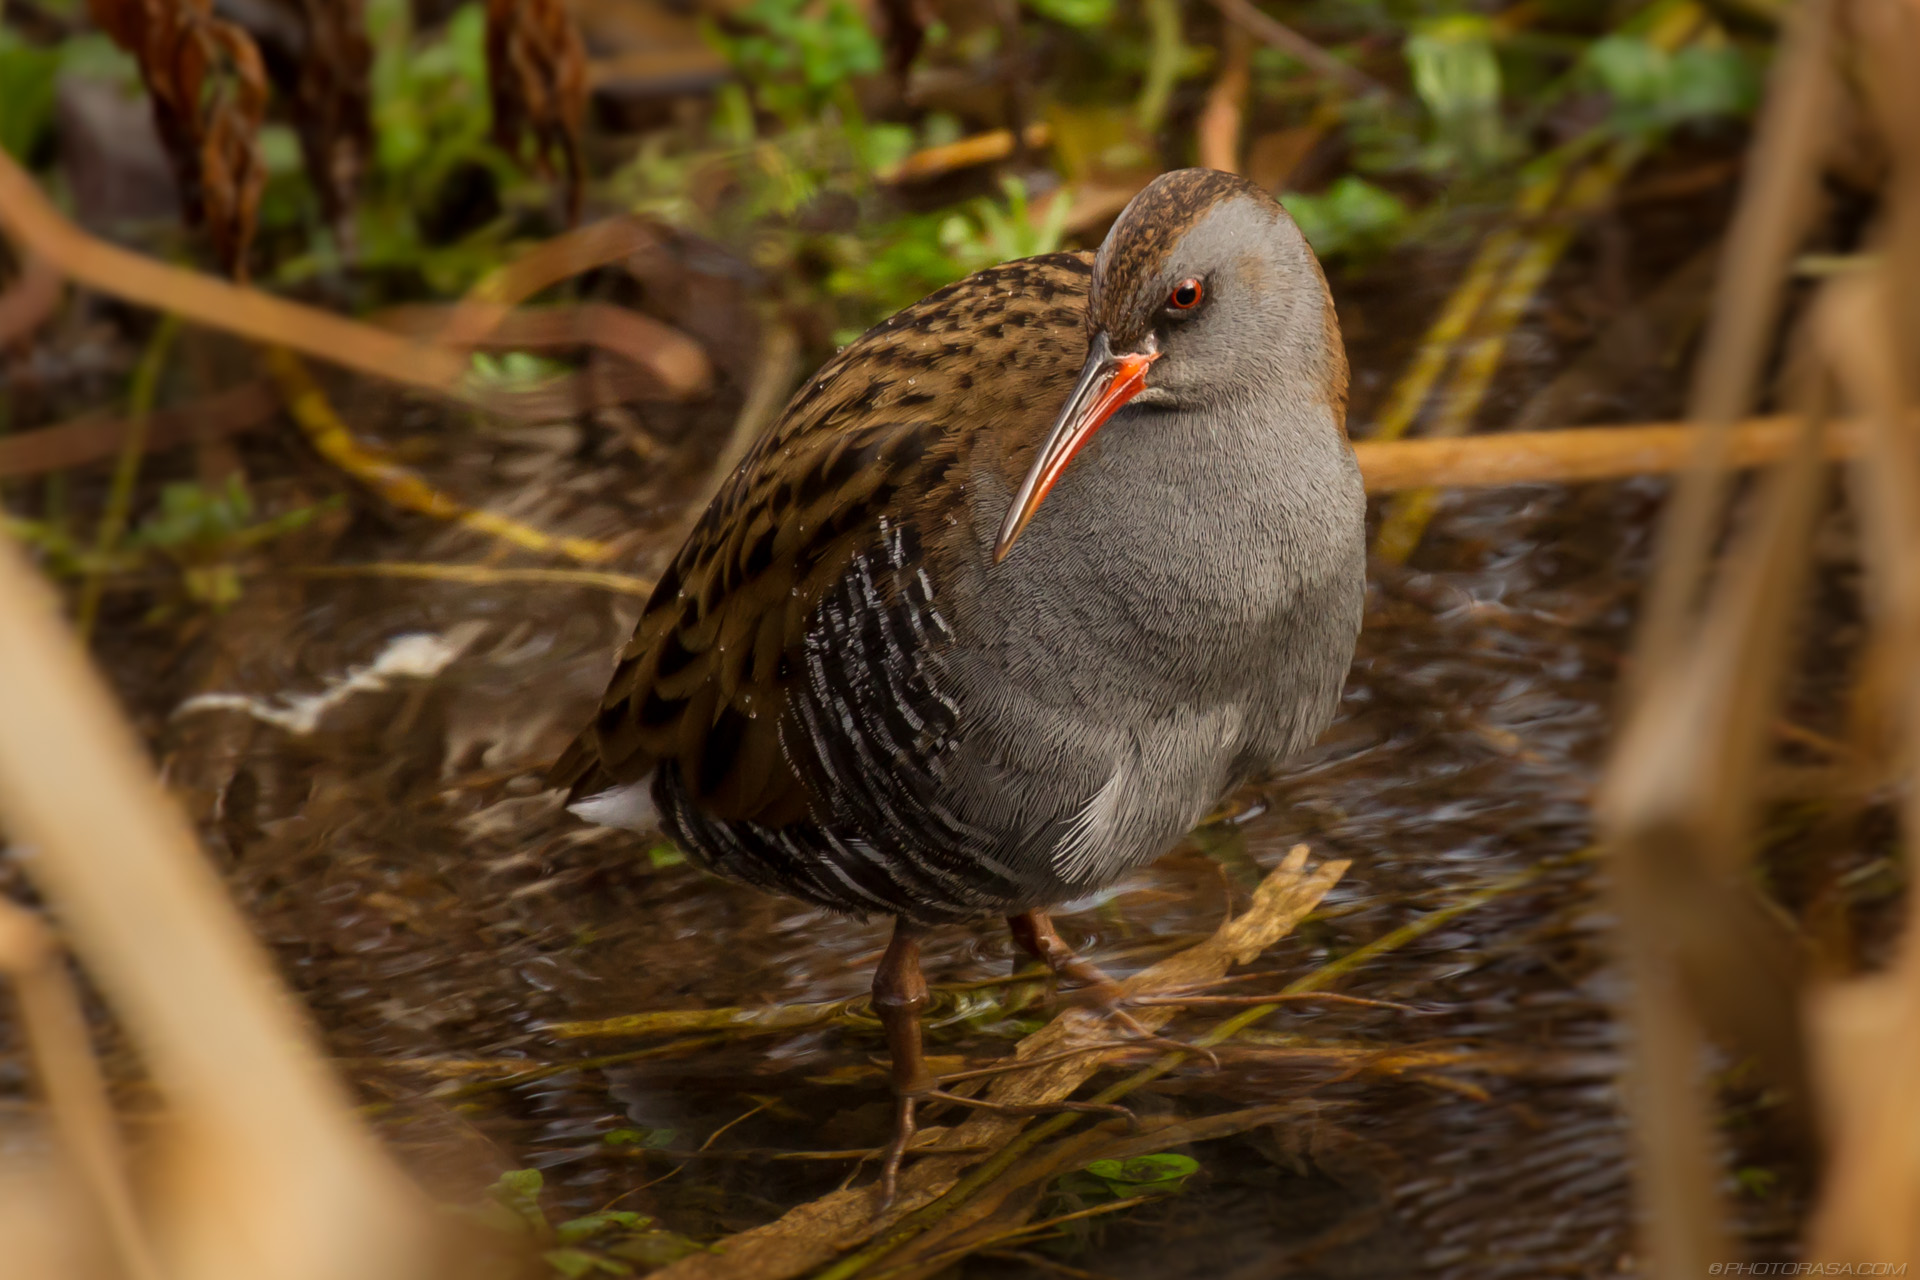 http://photorasa.com/water-rail-by-the-stream/long-beaked-water-rail/